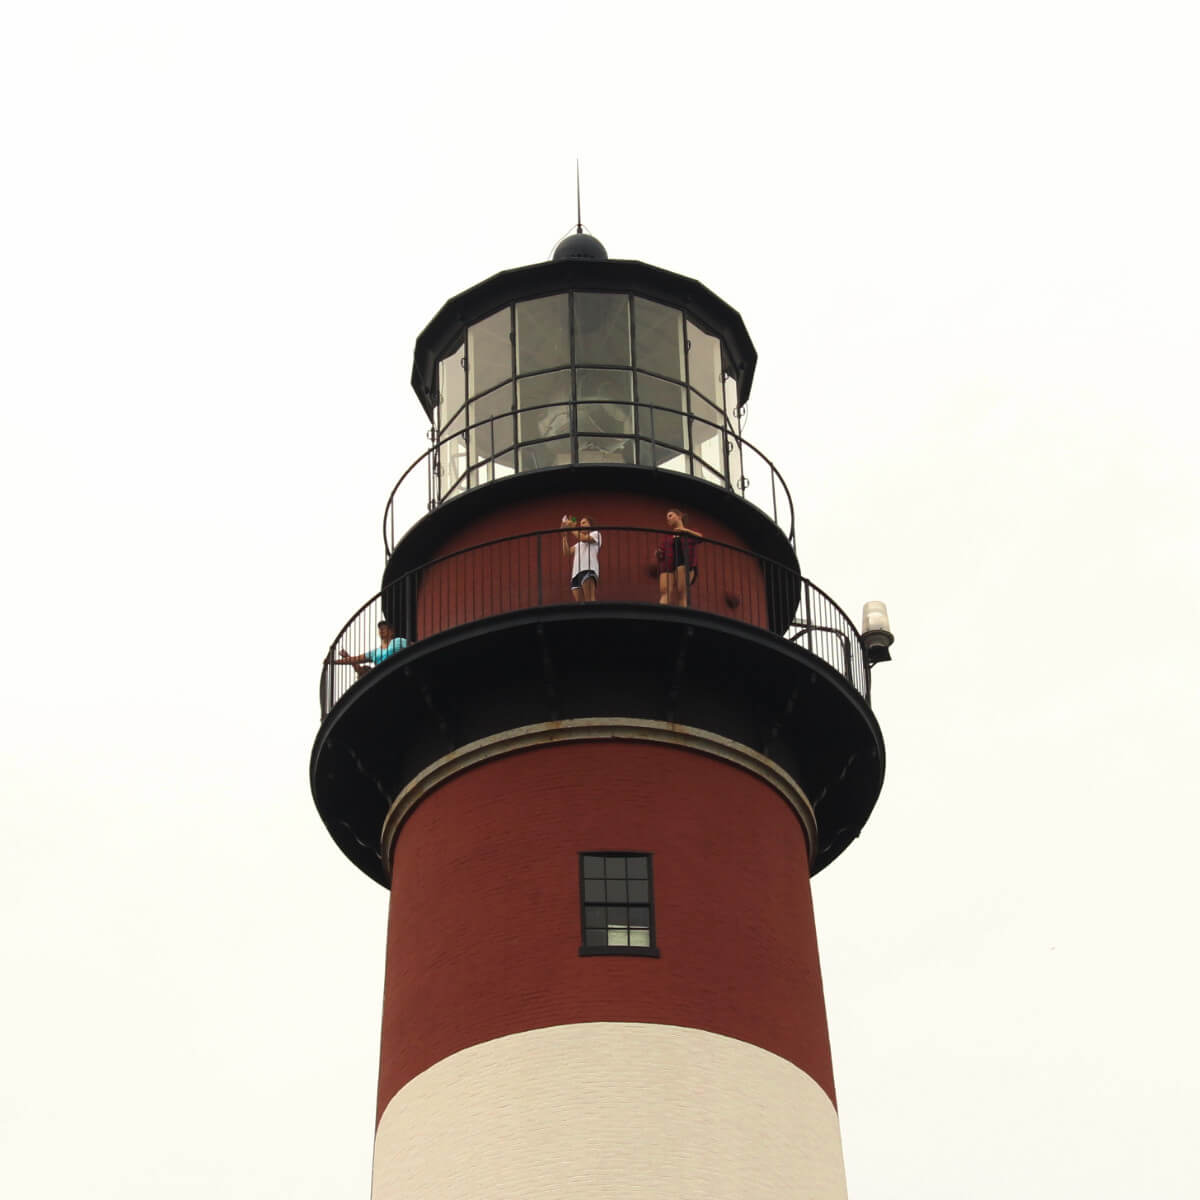 Looking out the lighthouse